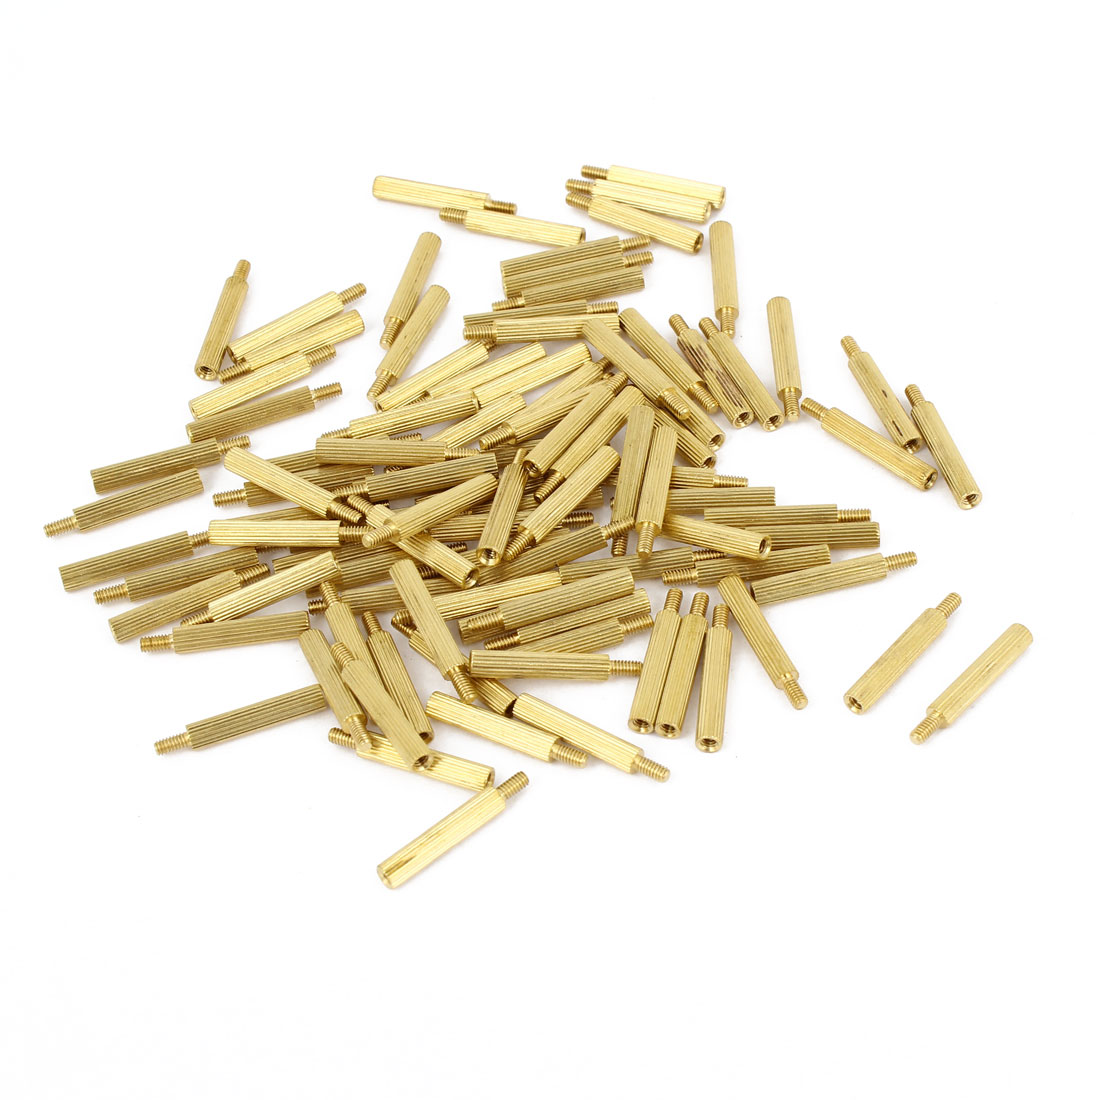 100Pcs Male to Female Thread PCB Board Brass Pillars Standoff M2x16mm